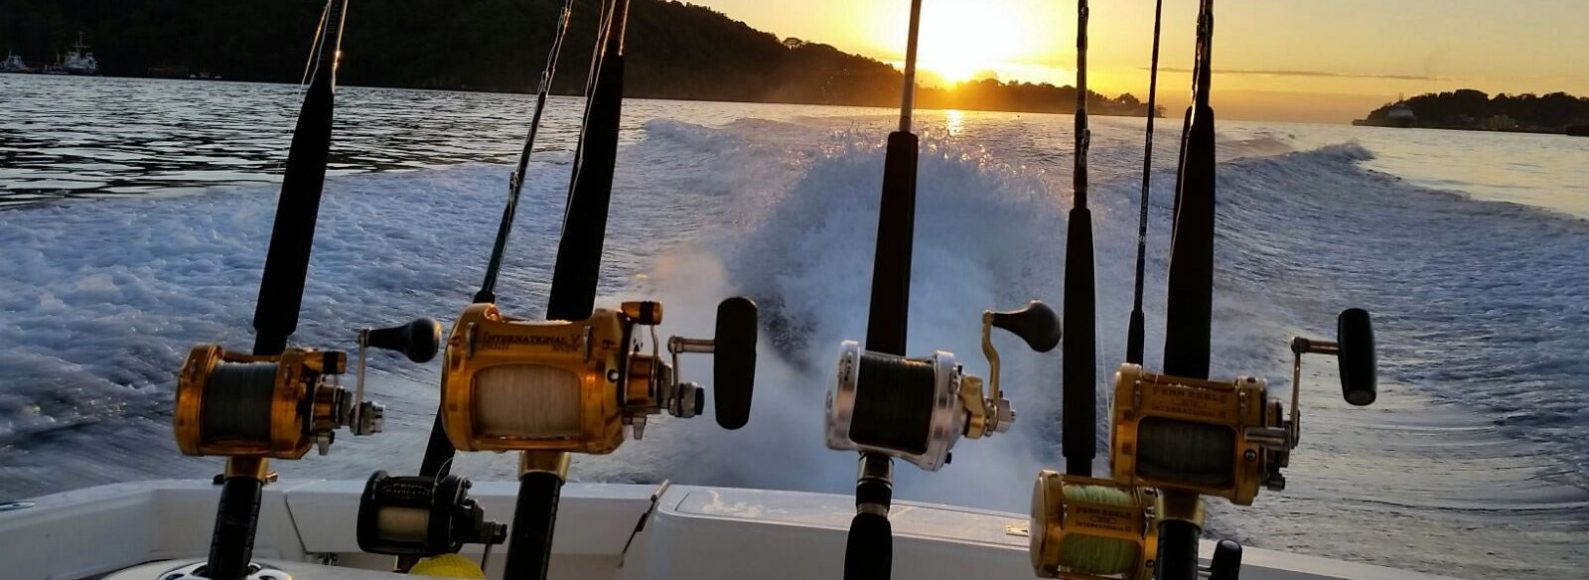 fishing poles on stern during sunset